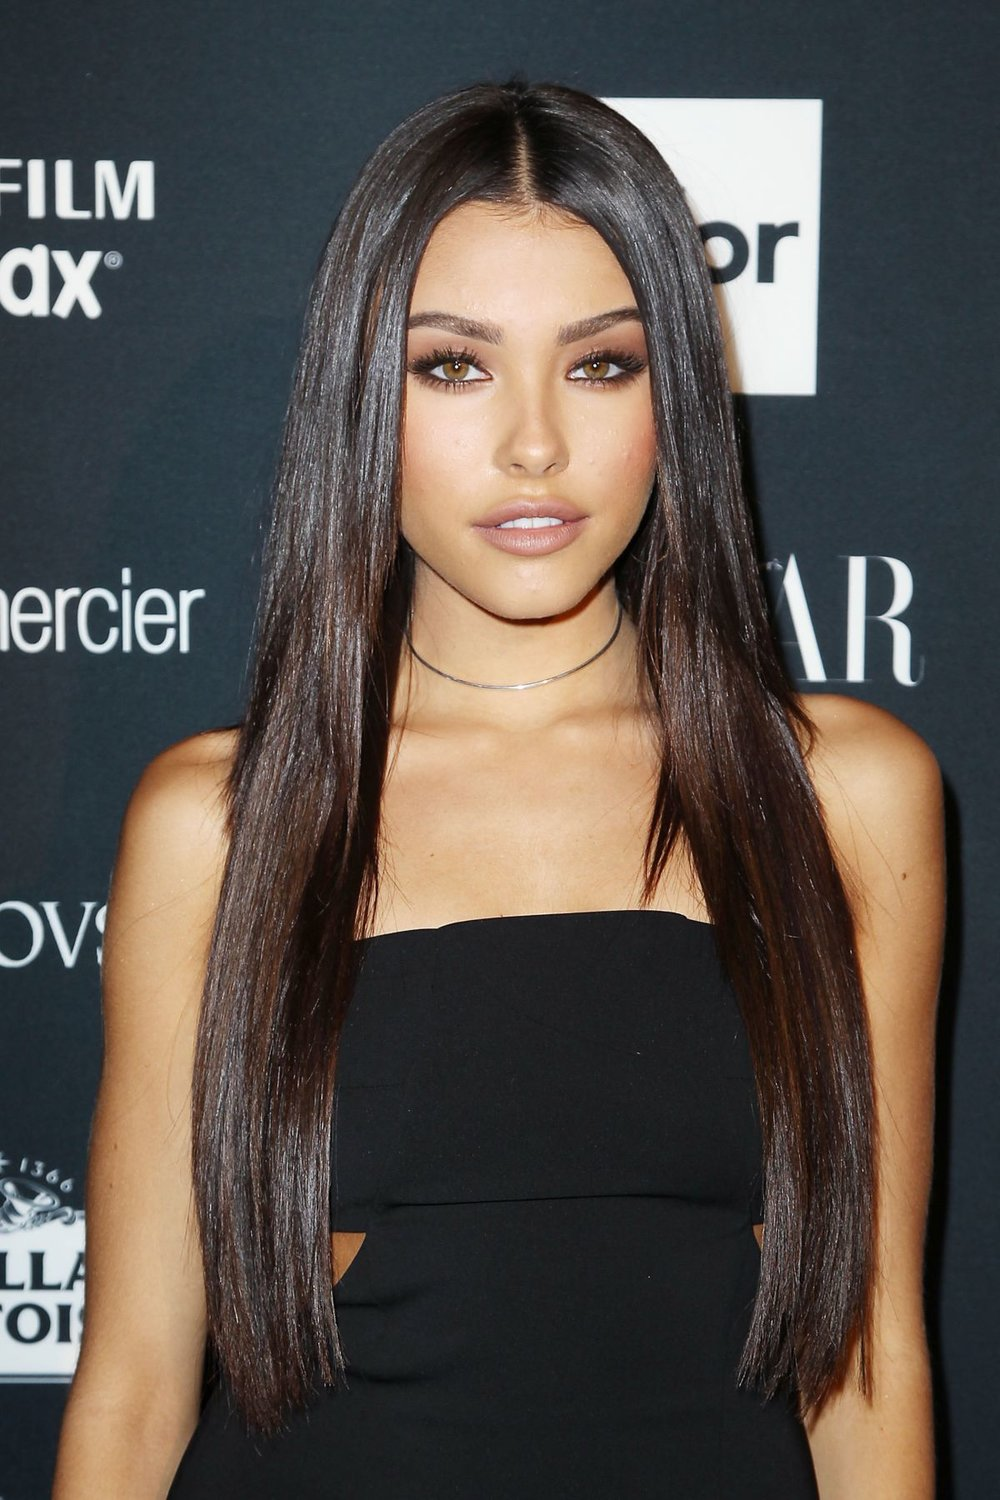 madison-beer-at-harper-s-bazaar-icons-party-in-new-york-09-08-2017_1.jpg